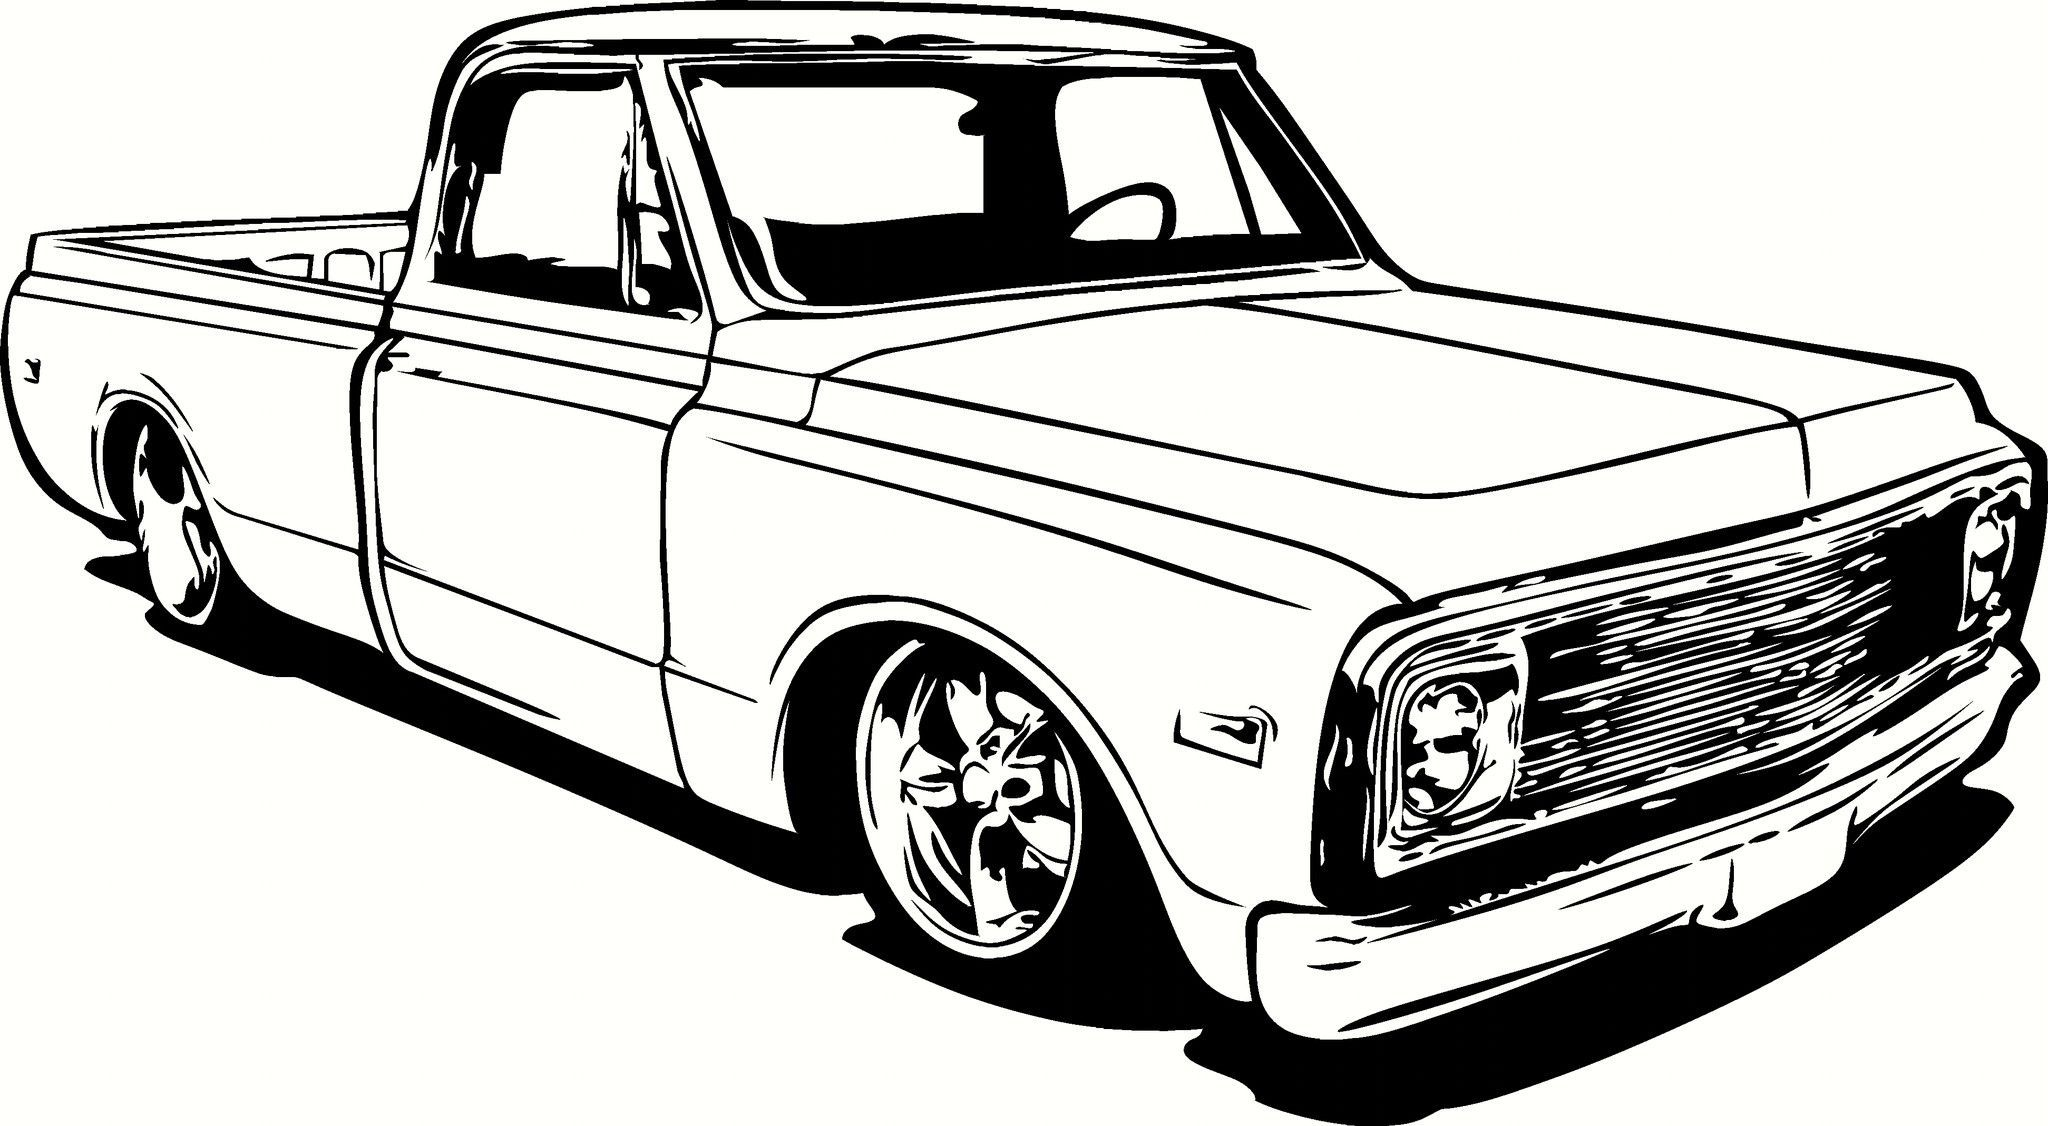 72 chevy pick up clipart black and white clip freeuse 1970 Chevrolet C10 Pick Up Truck Vinyl Cut Out Decal, Sticker ... clip freeuse